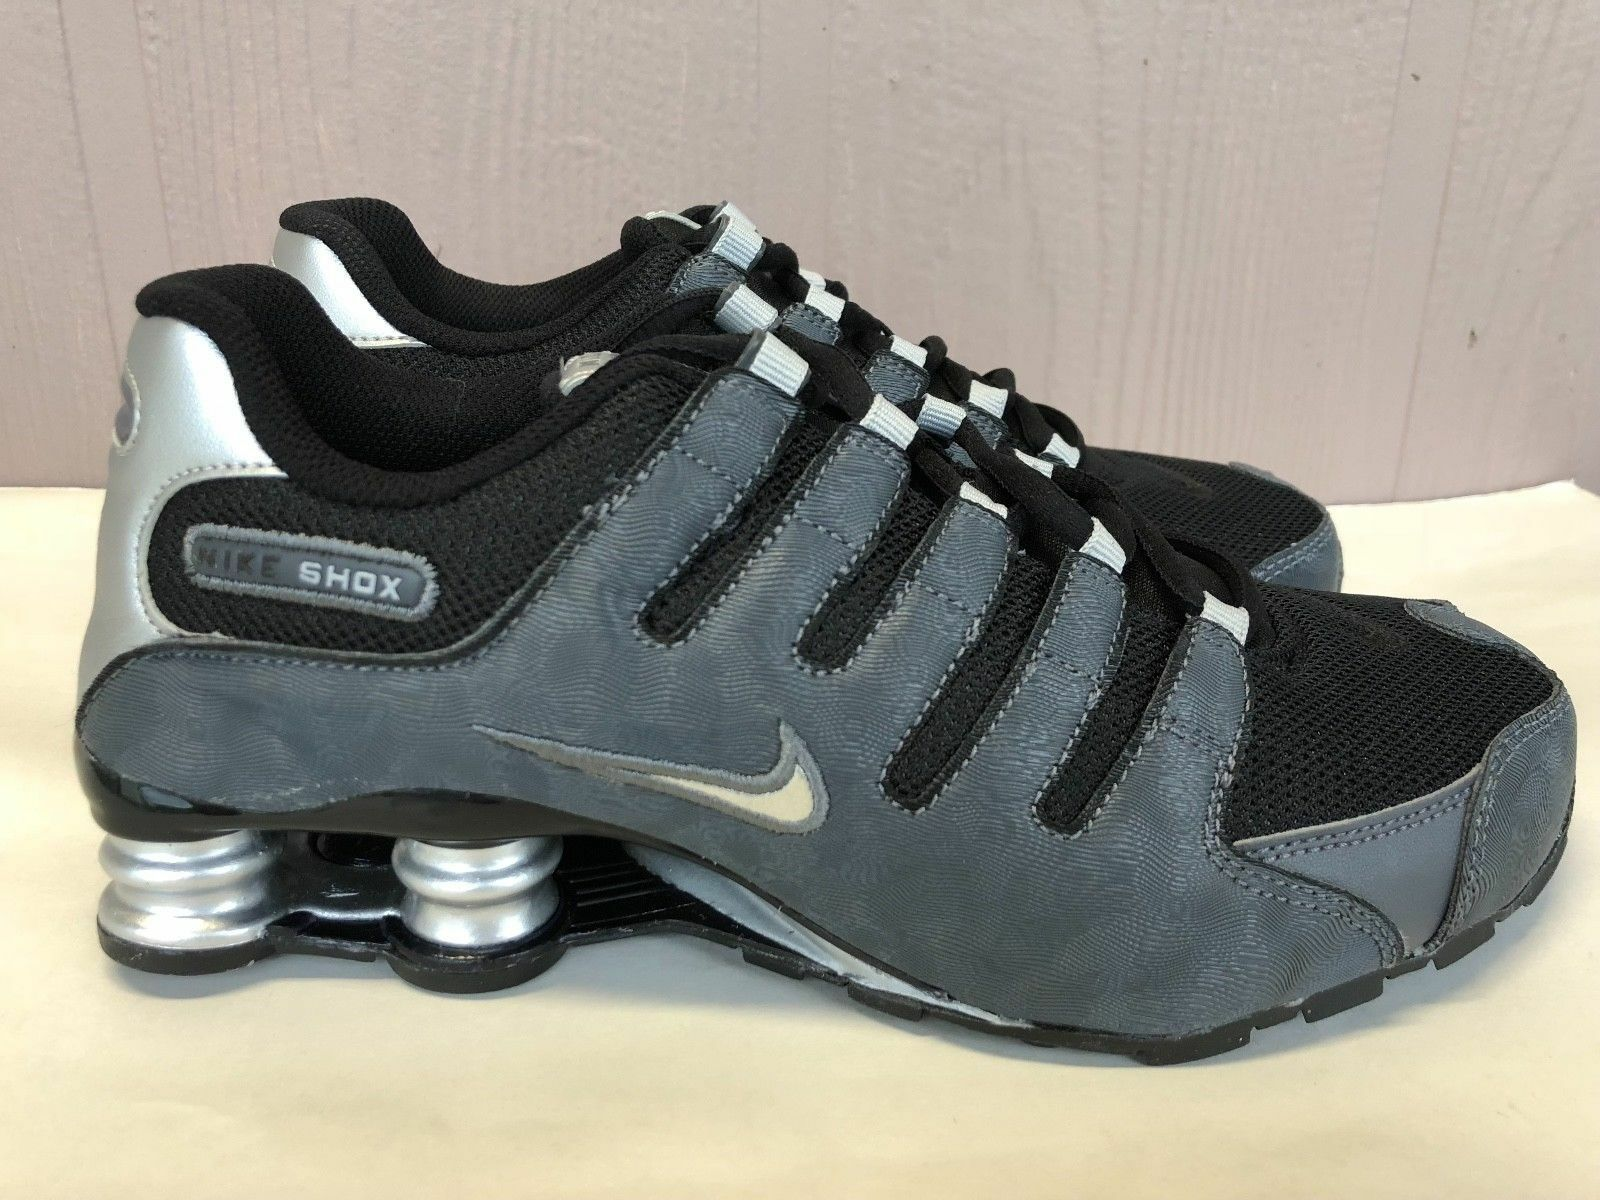 d46f1ab4 Details about Nike Shox NZ SI Plus Youth GS Running Shoes Gray Black  317929-029 Size 4.5Y